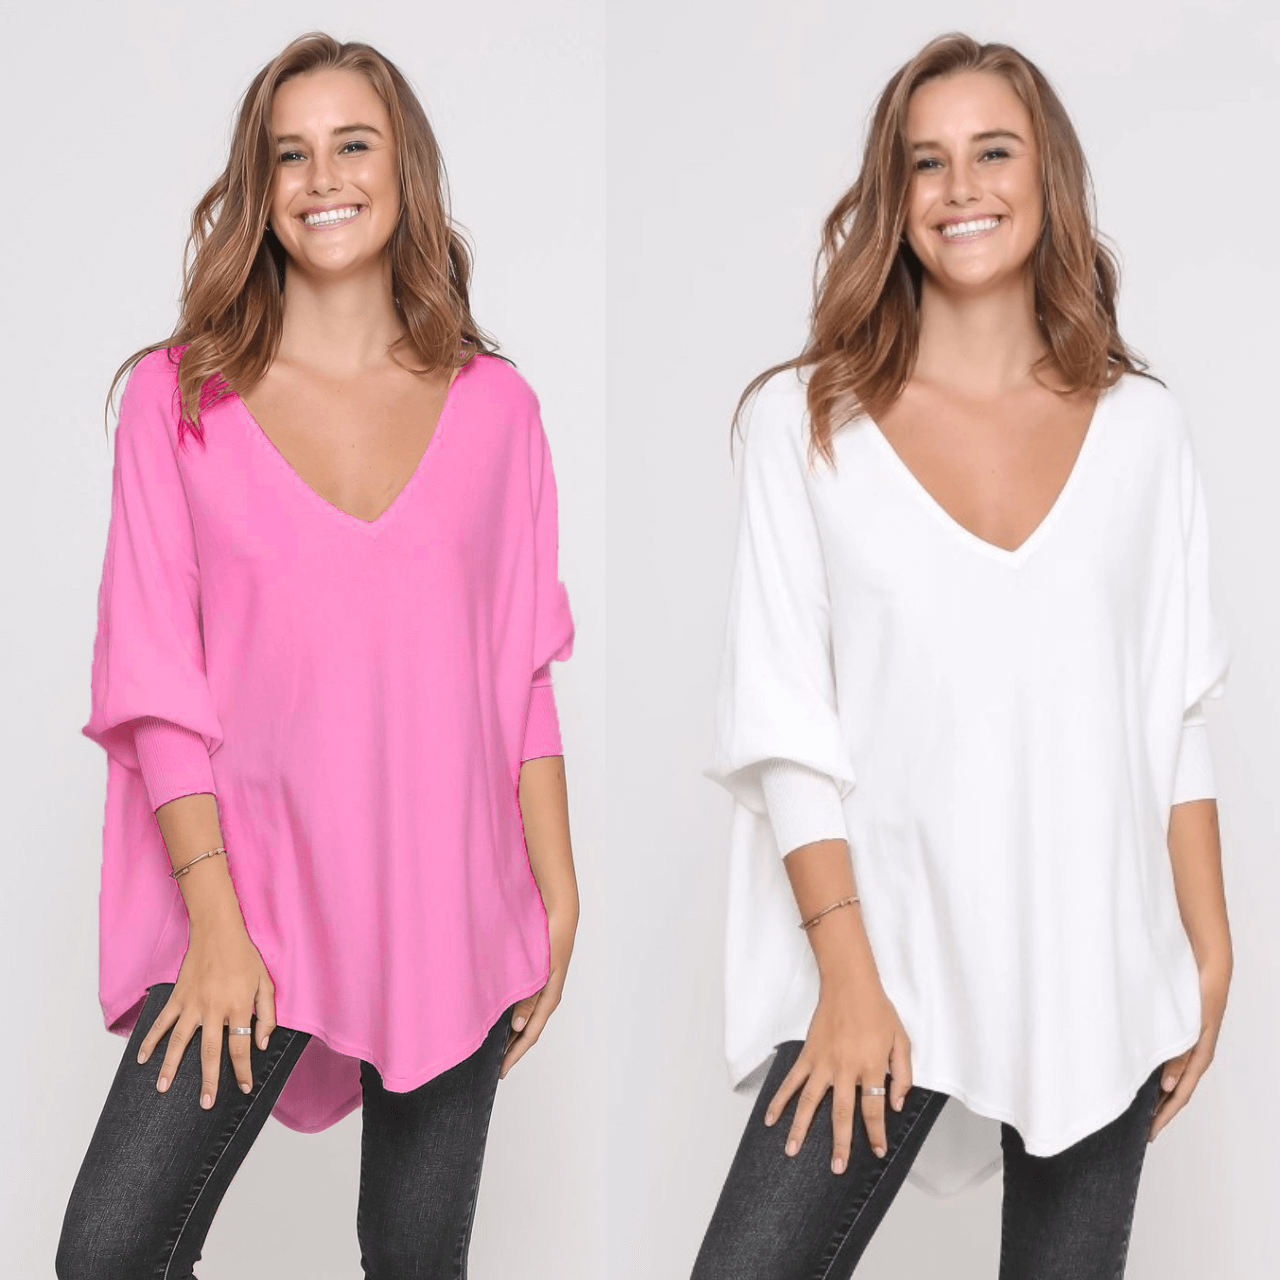 Two Zali Knit Top Bundle - Blossom and White